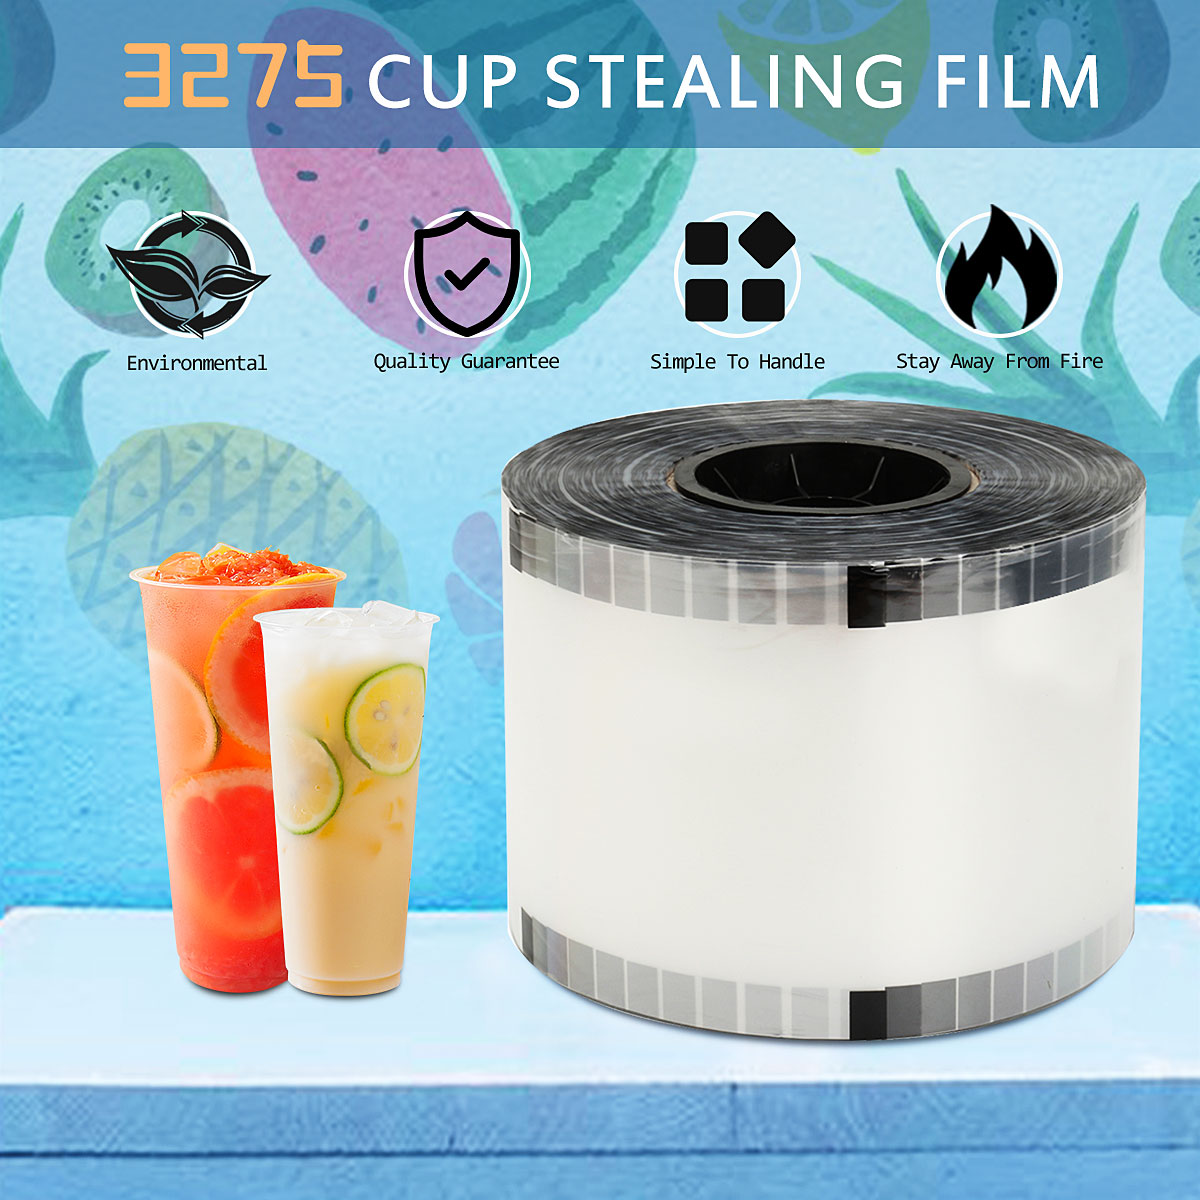 3725 Cups Clear Cup Sealer Bubble Tea Juice Drink Film Cover Sealing Film For Cup Sealer Sealing Machine Cover 90-105mm Cup Dia